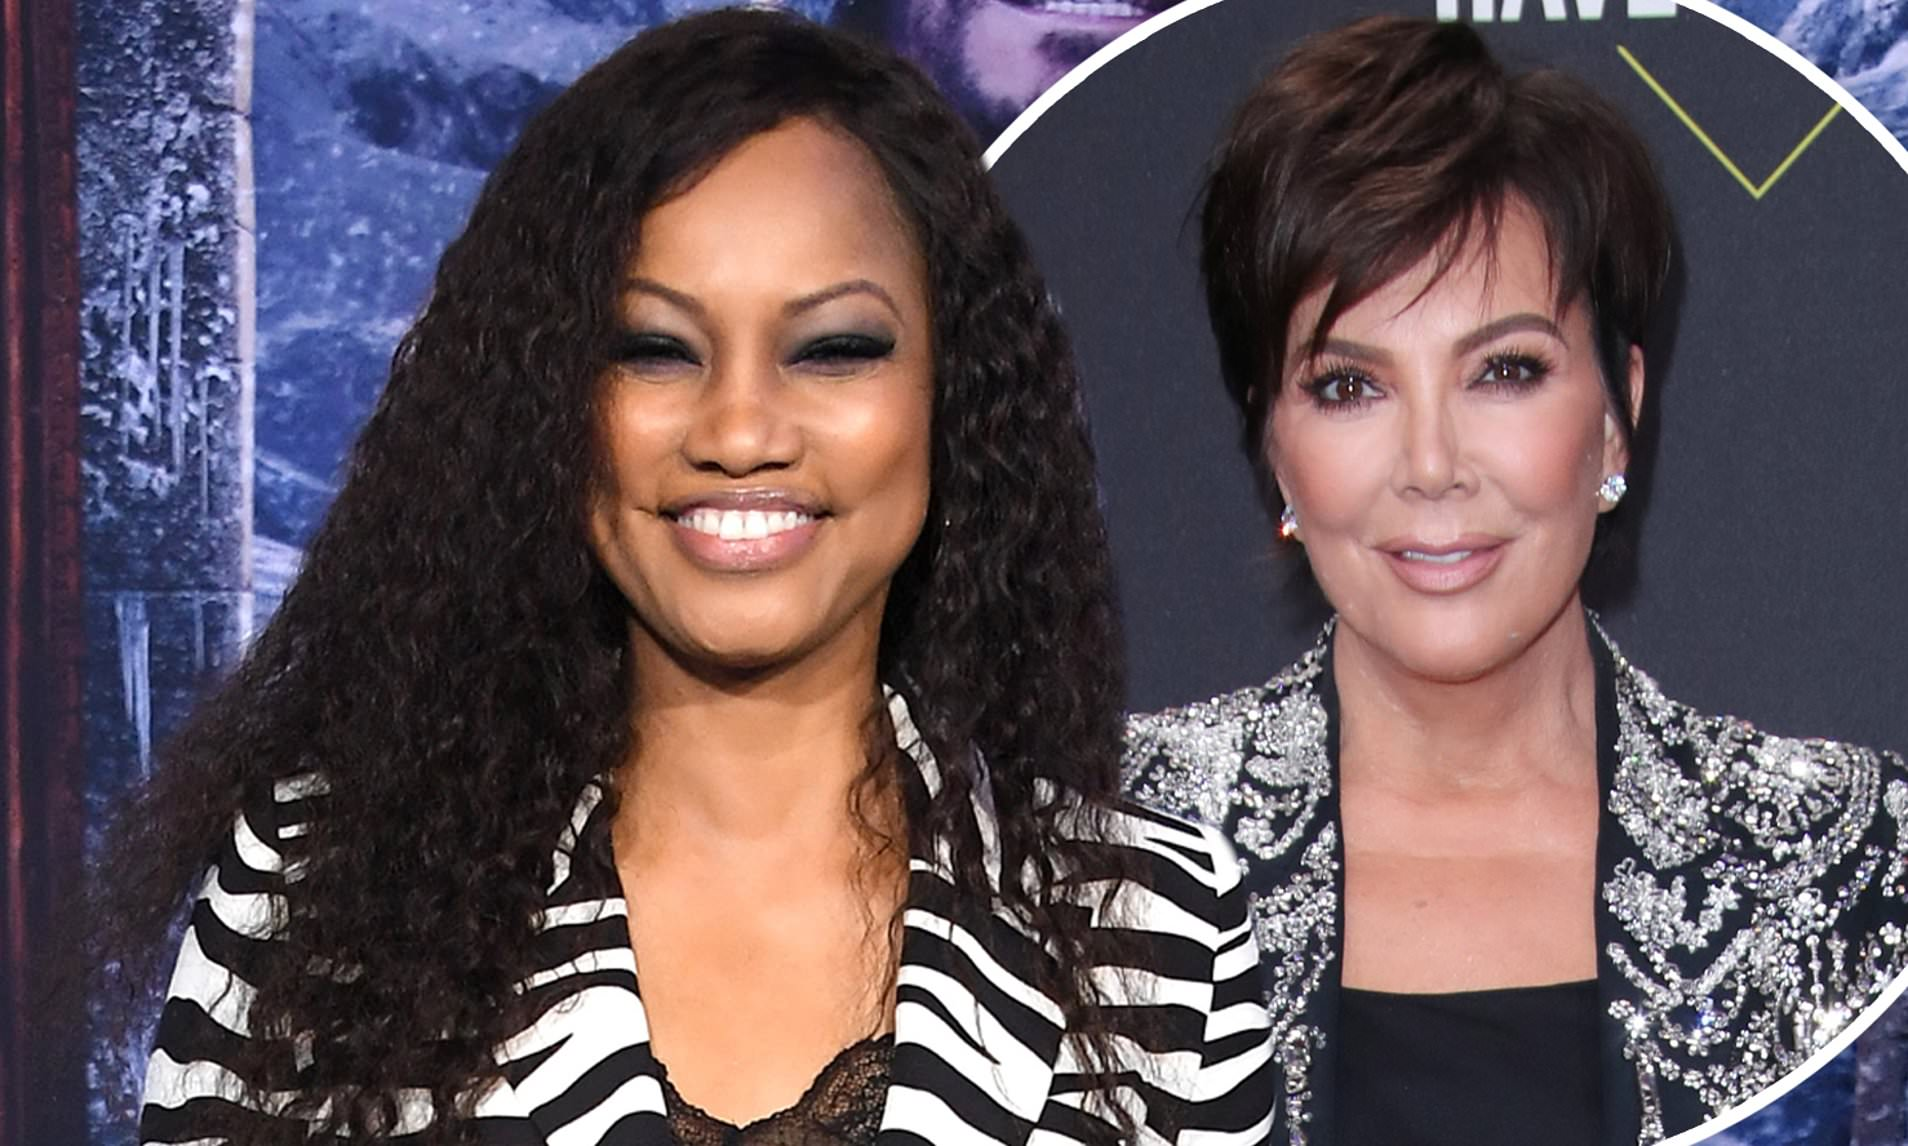 garcelle-beauvais-on-kris-jenner-joining-rhobh-she-fits-the-bill